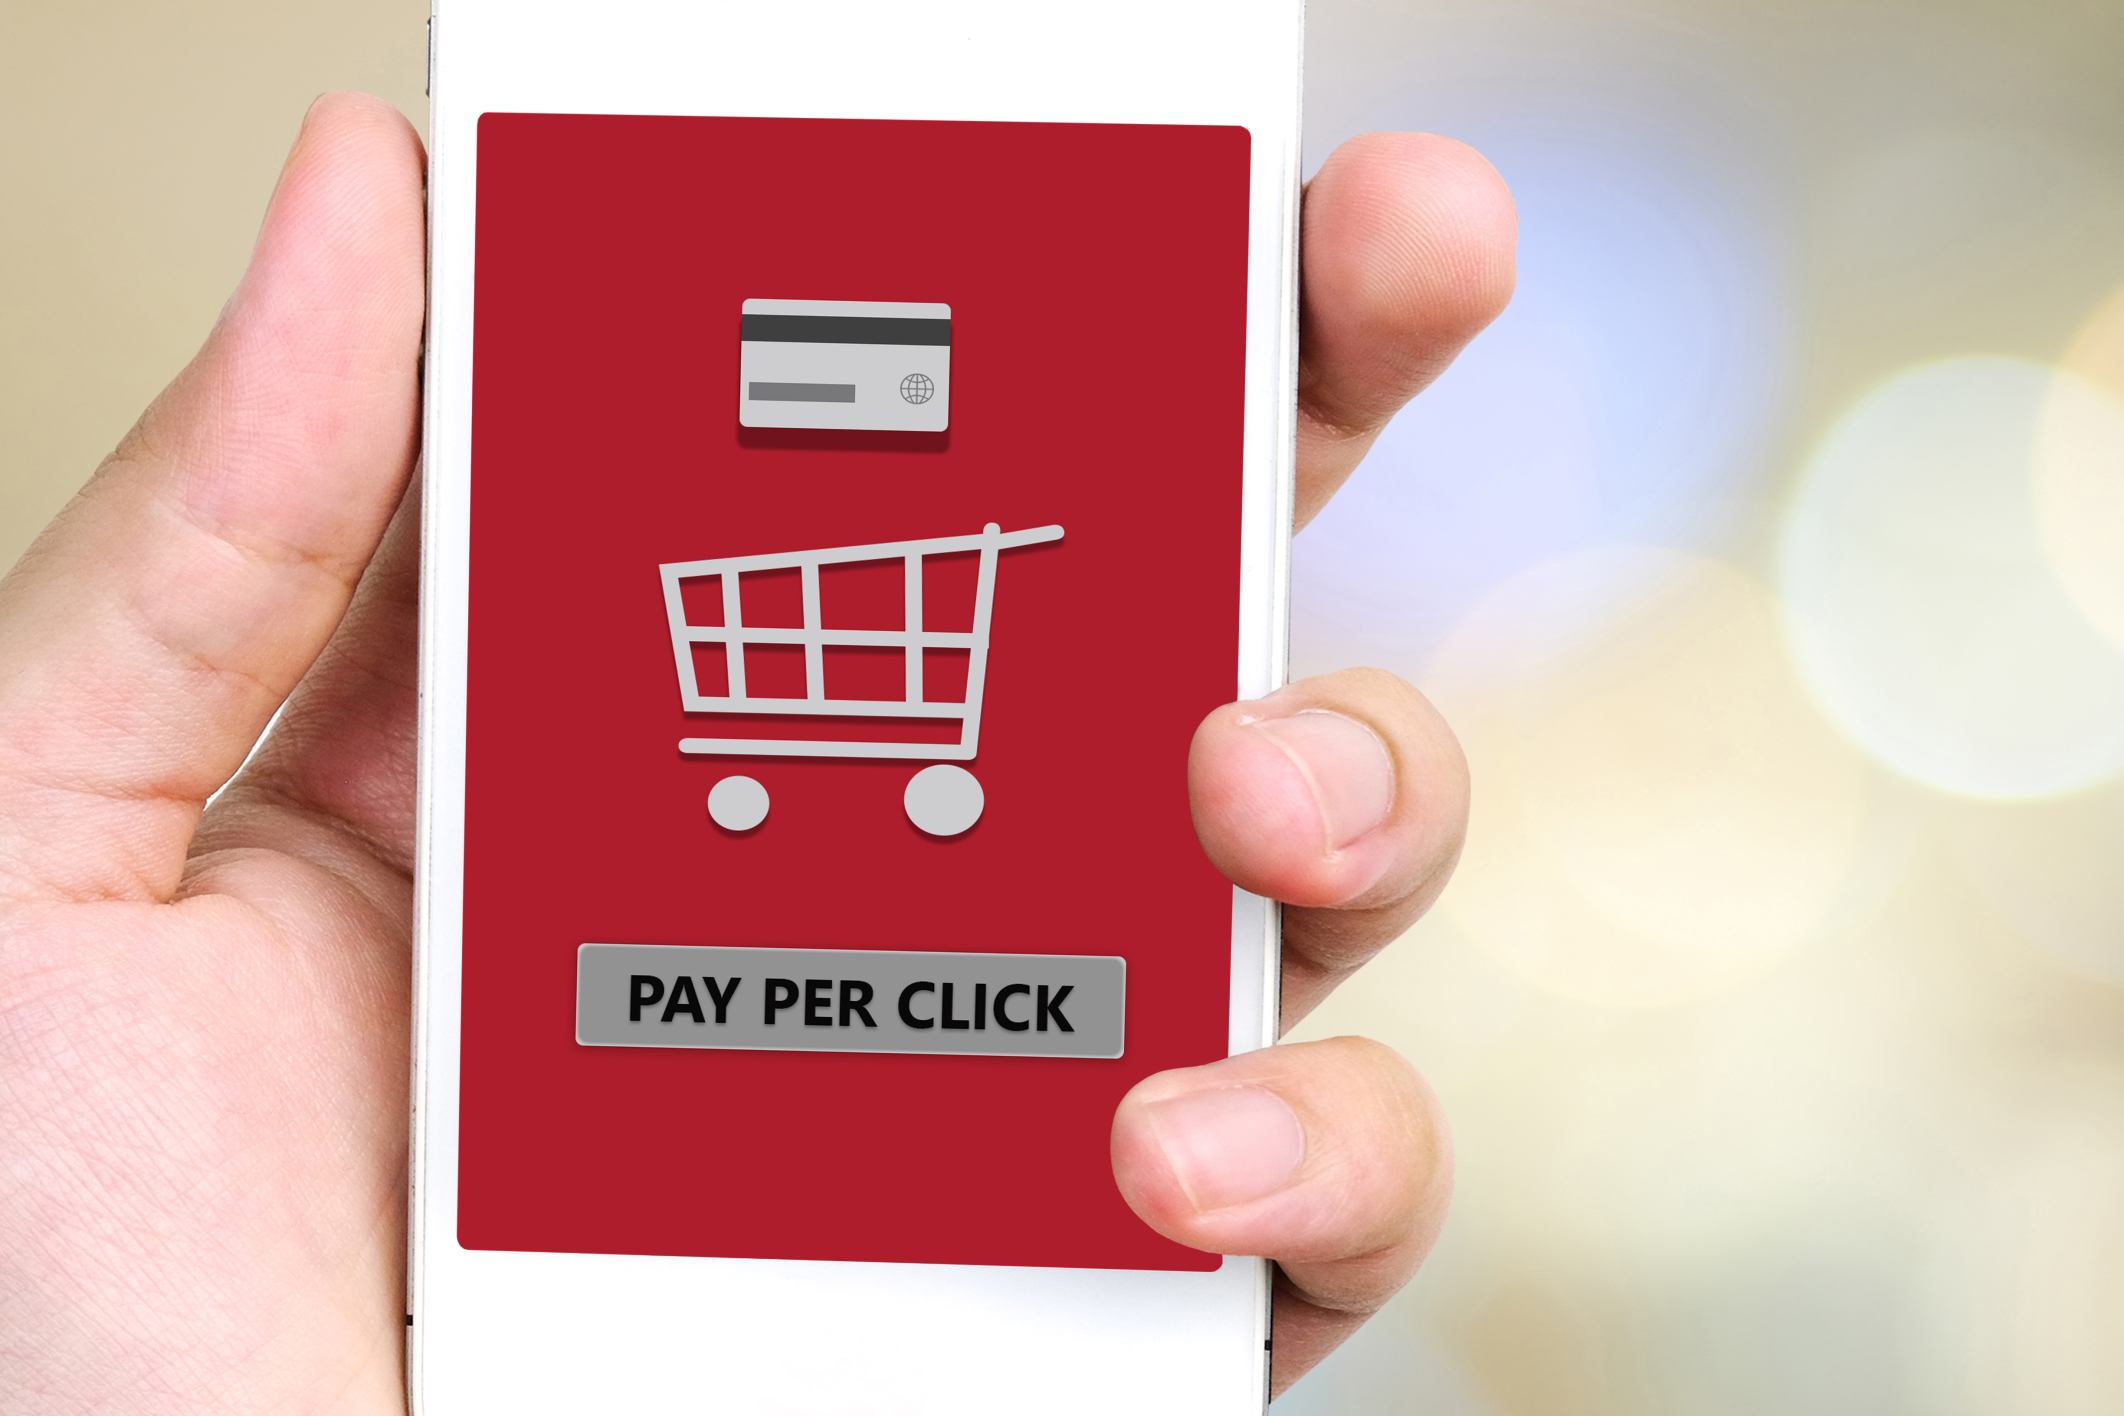 Pay per click on smart phone screen